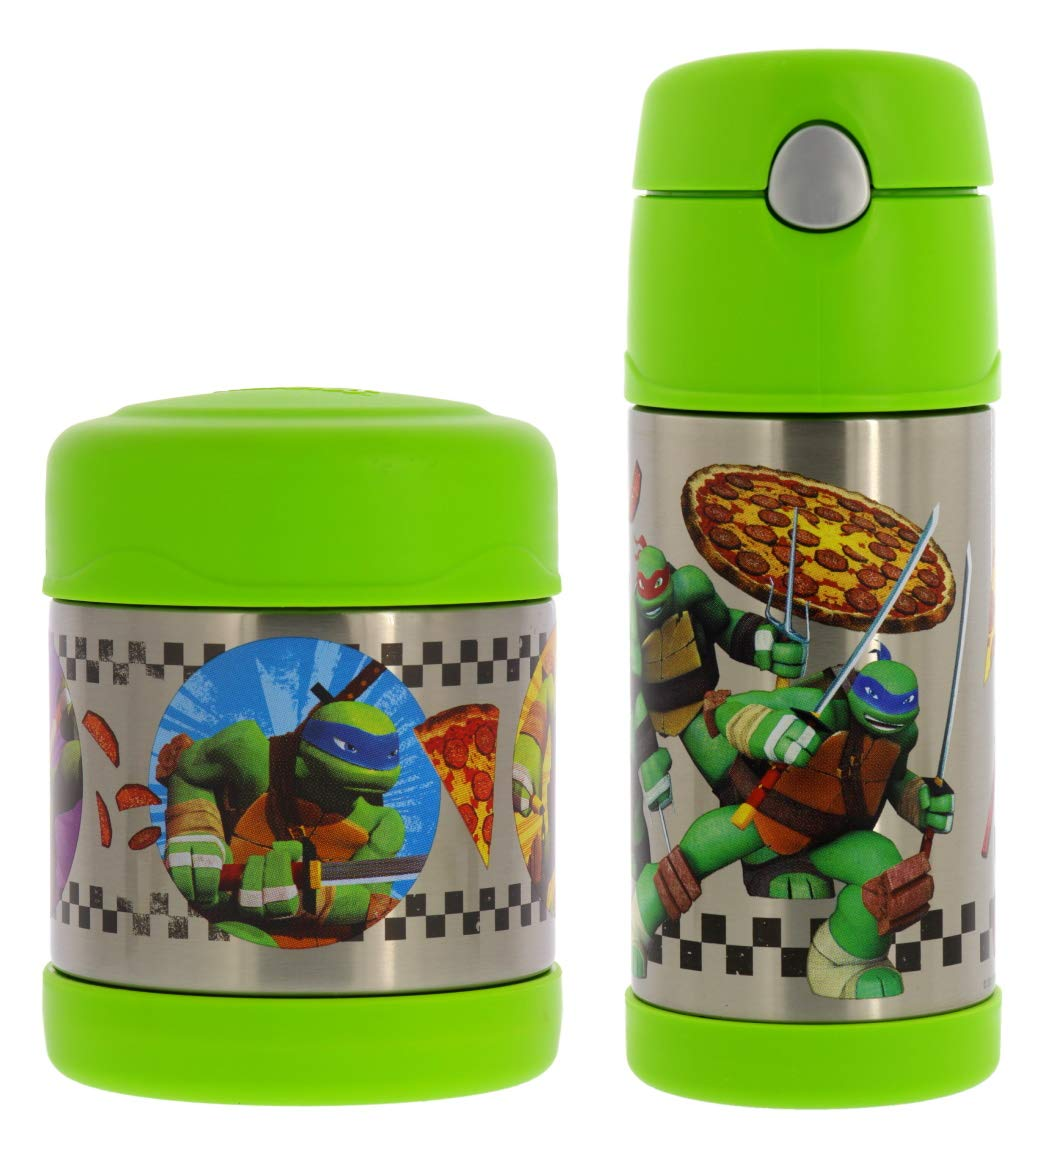 Thermos Vacuum Insulated Stainless Steel 10oz Food Jar & 12oz Water Bottle w/Straw Set - Tasteless and Odorless, BPA Free, Great for Children, Lunchbags, Travel-TMNT